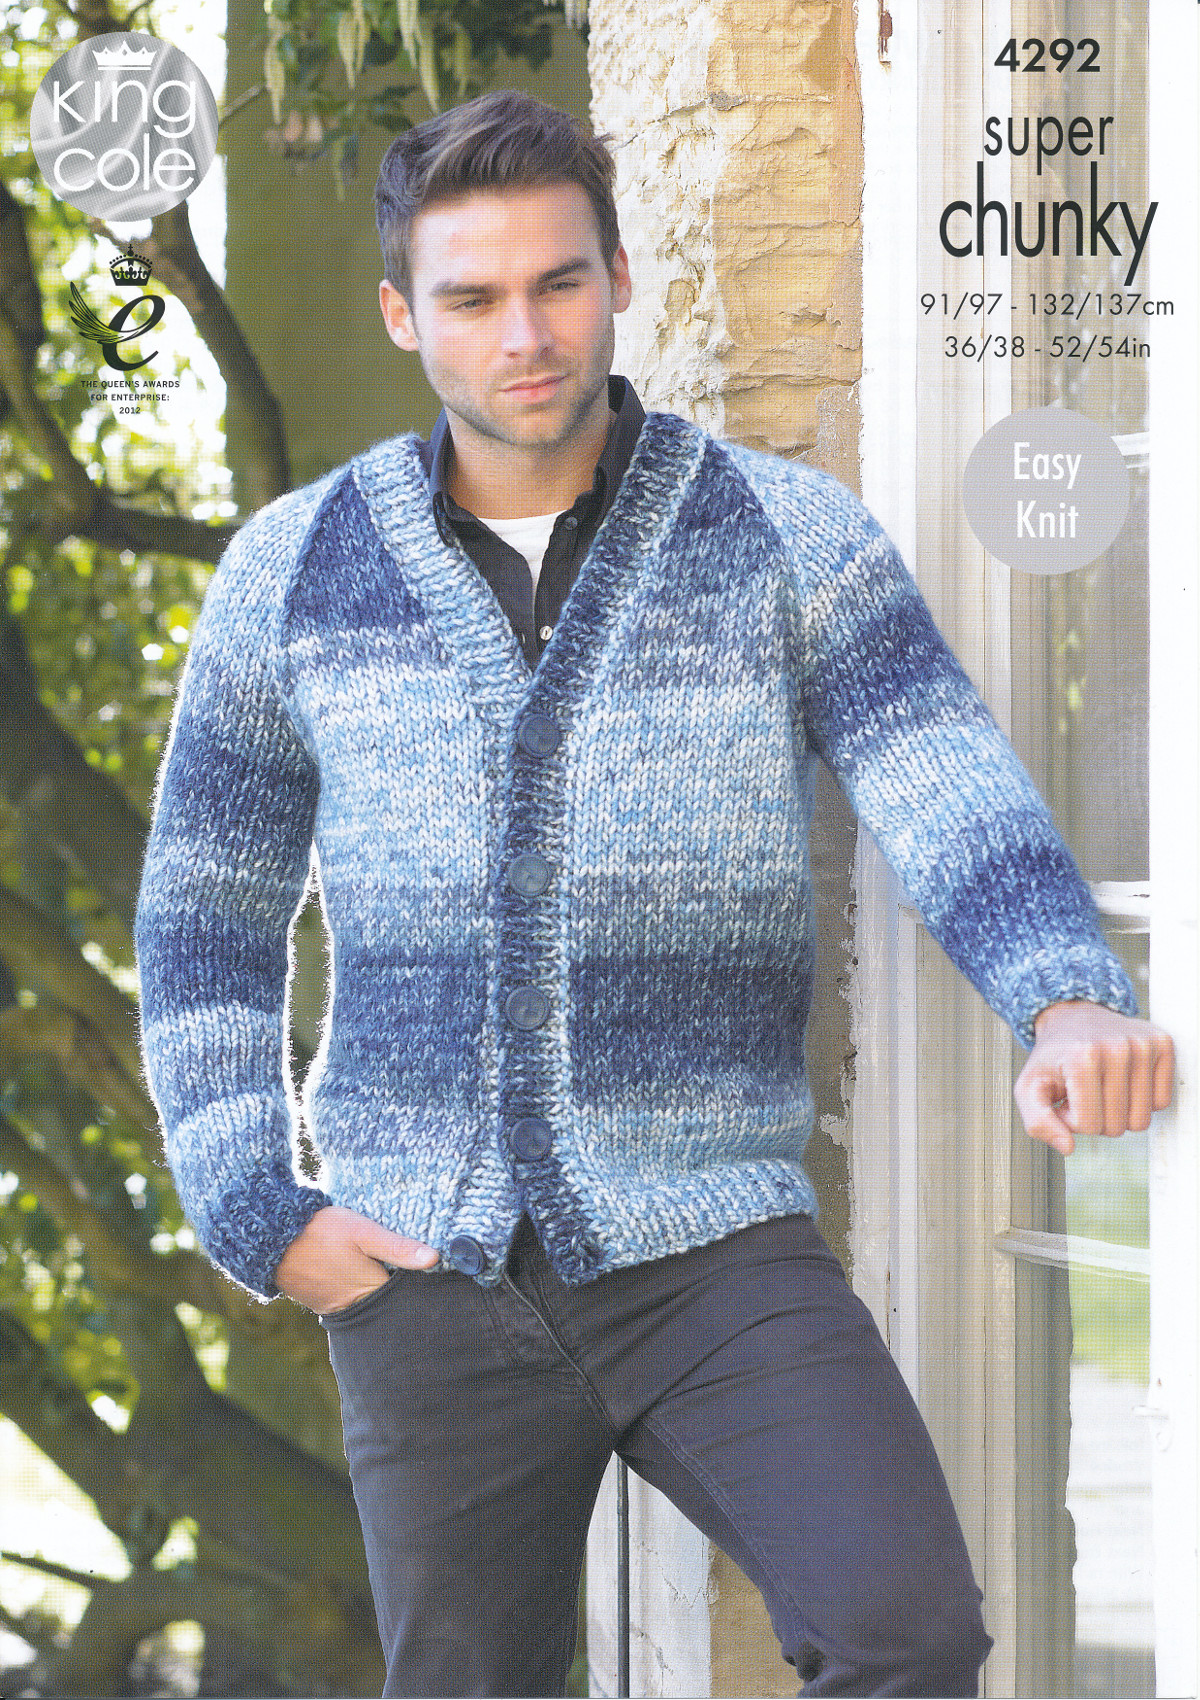 Knitting Pattern King Cole : Mens Super Chunky Knitting Pattern King Cole Easy Knit ...